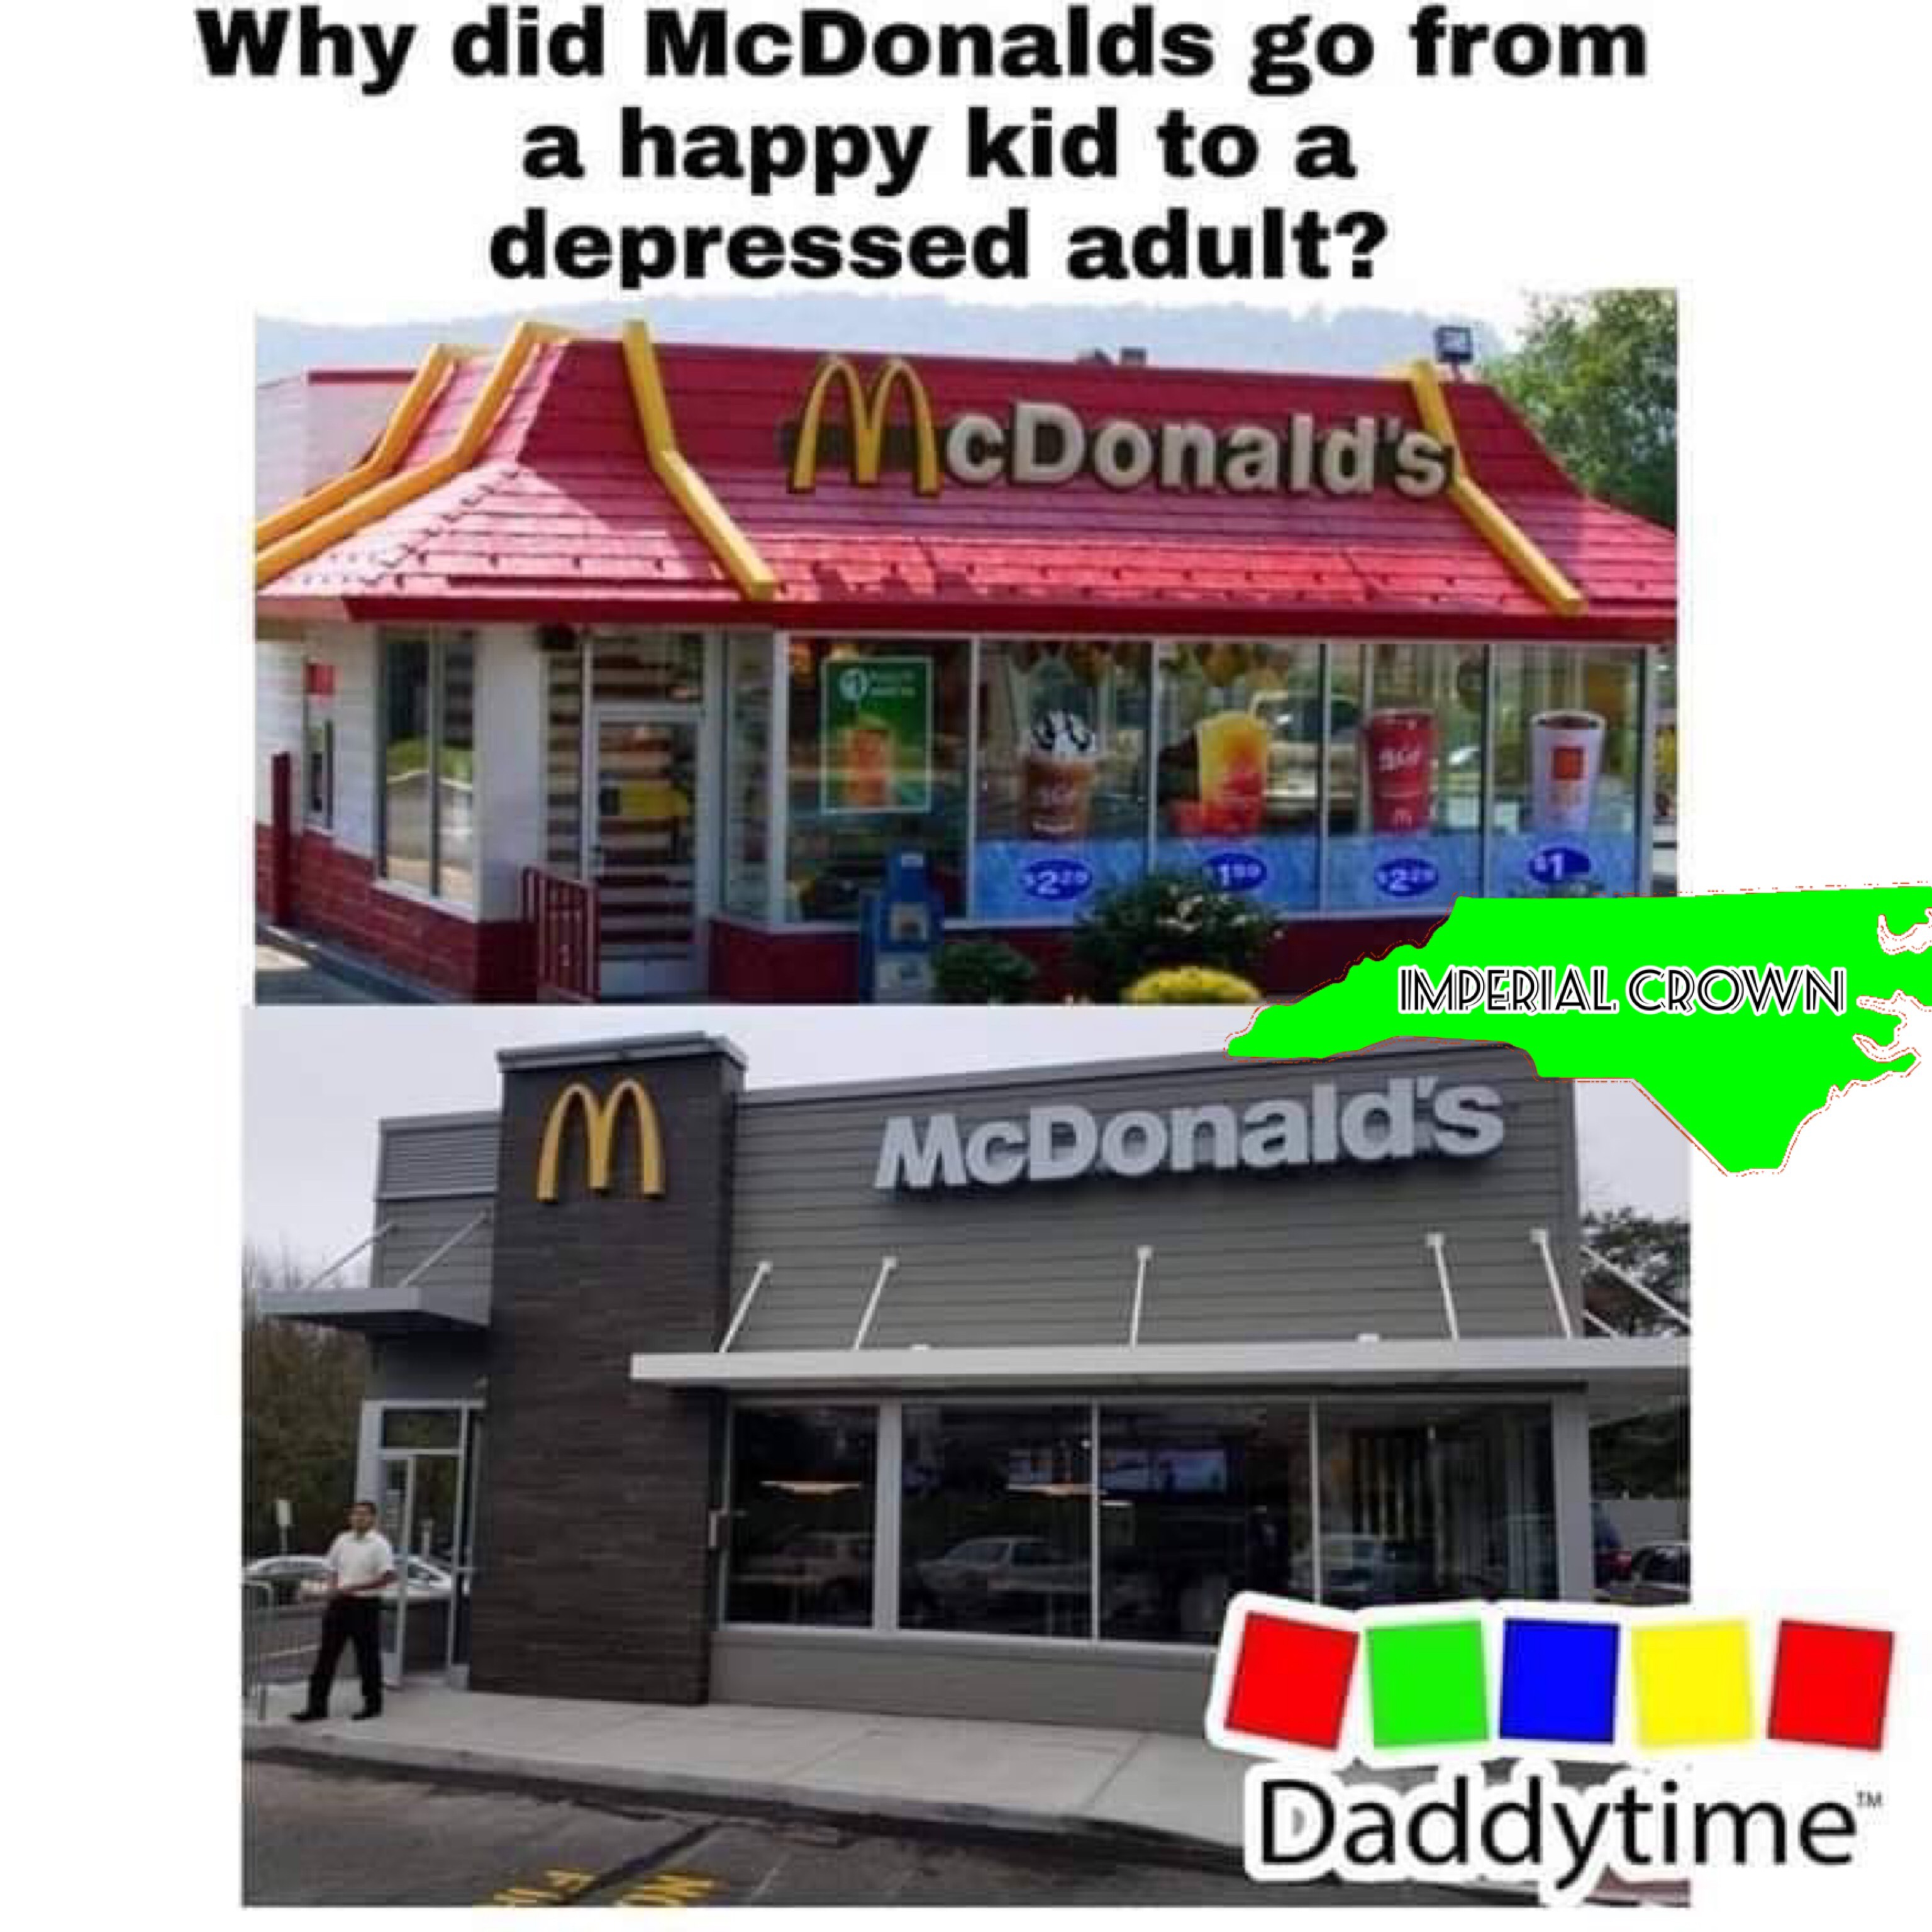 Why did Mc Donald's go from a happy kid to…